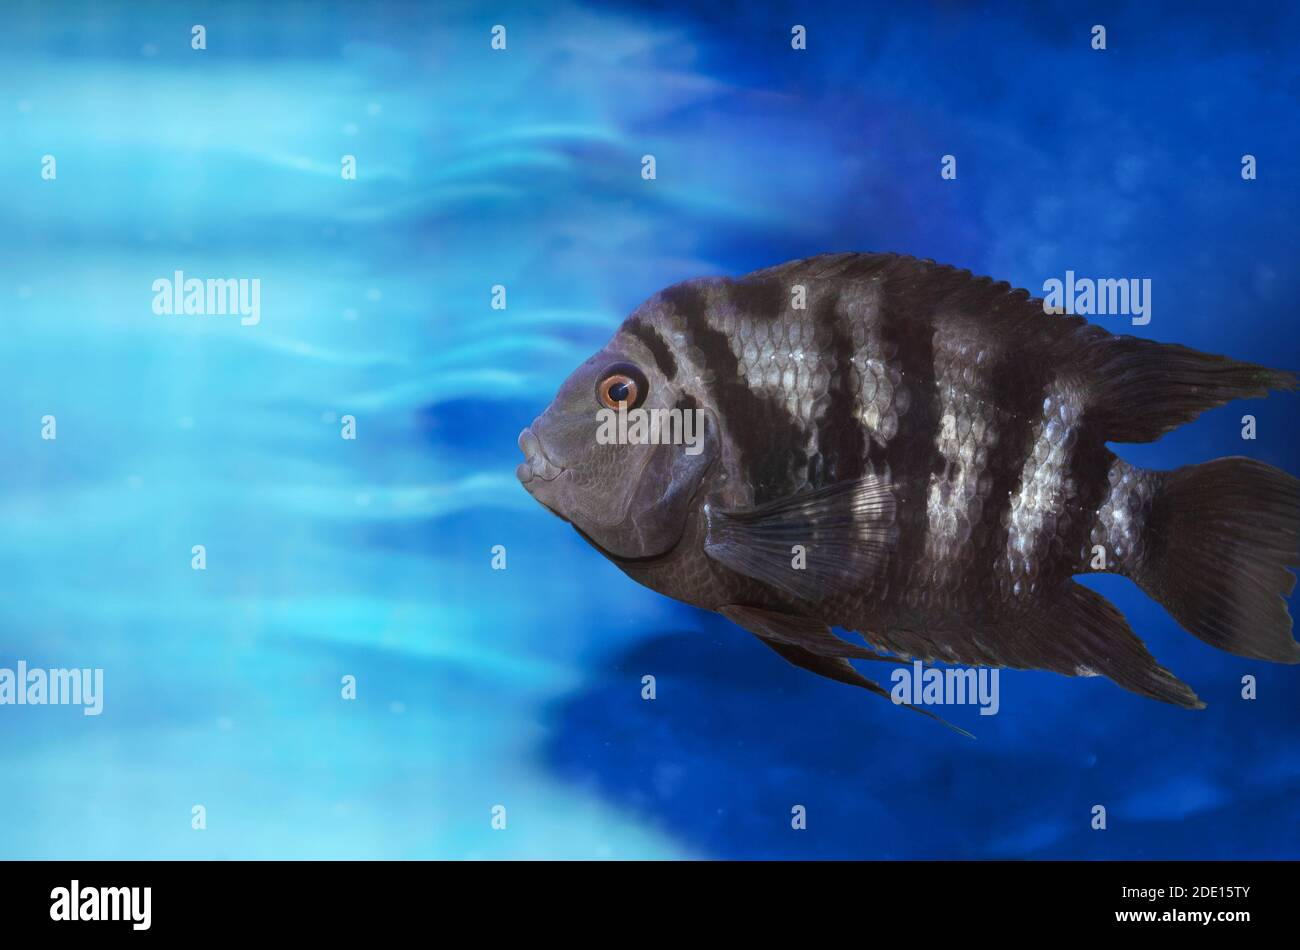 Fish With Black Stripes High Resolution Stock Photography And Images Alamy